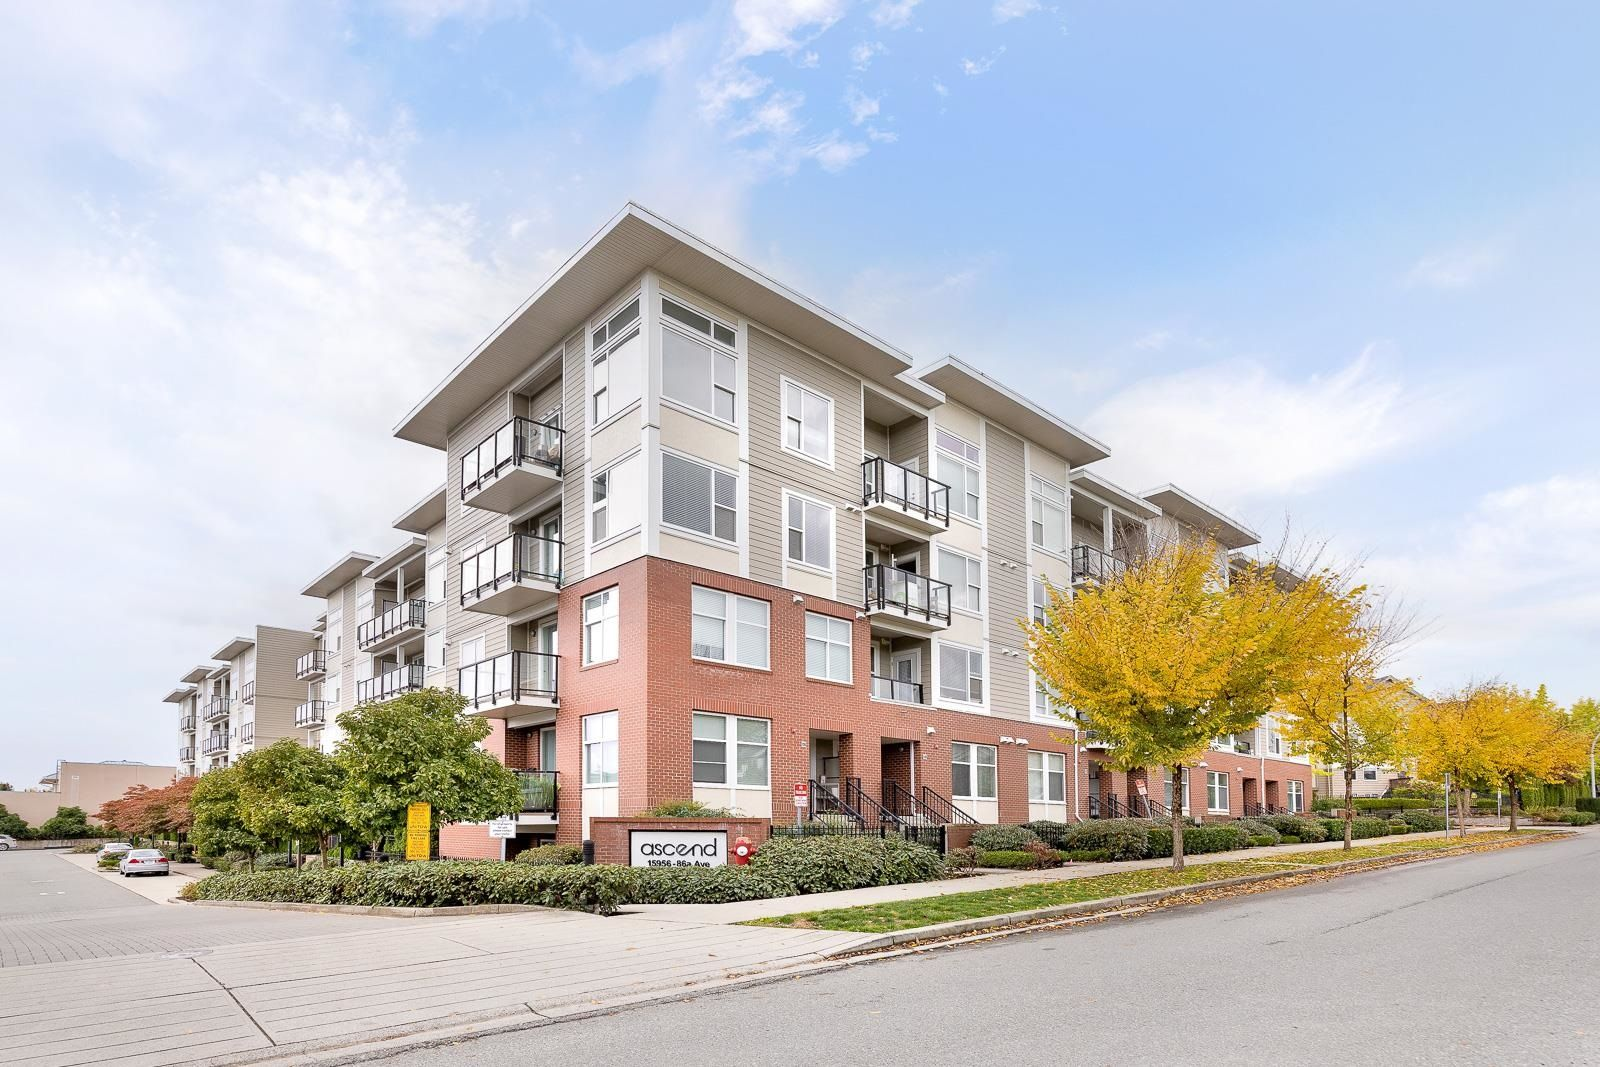 """Main Photo: 402 15956 86A Avenue in Surrey: Fleetwood Tynehead Condo for sale in """"ASCEND"""" : MLS®# R2623853"""